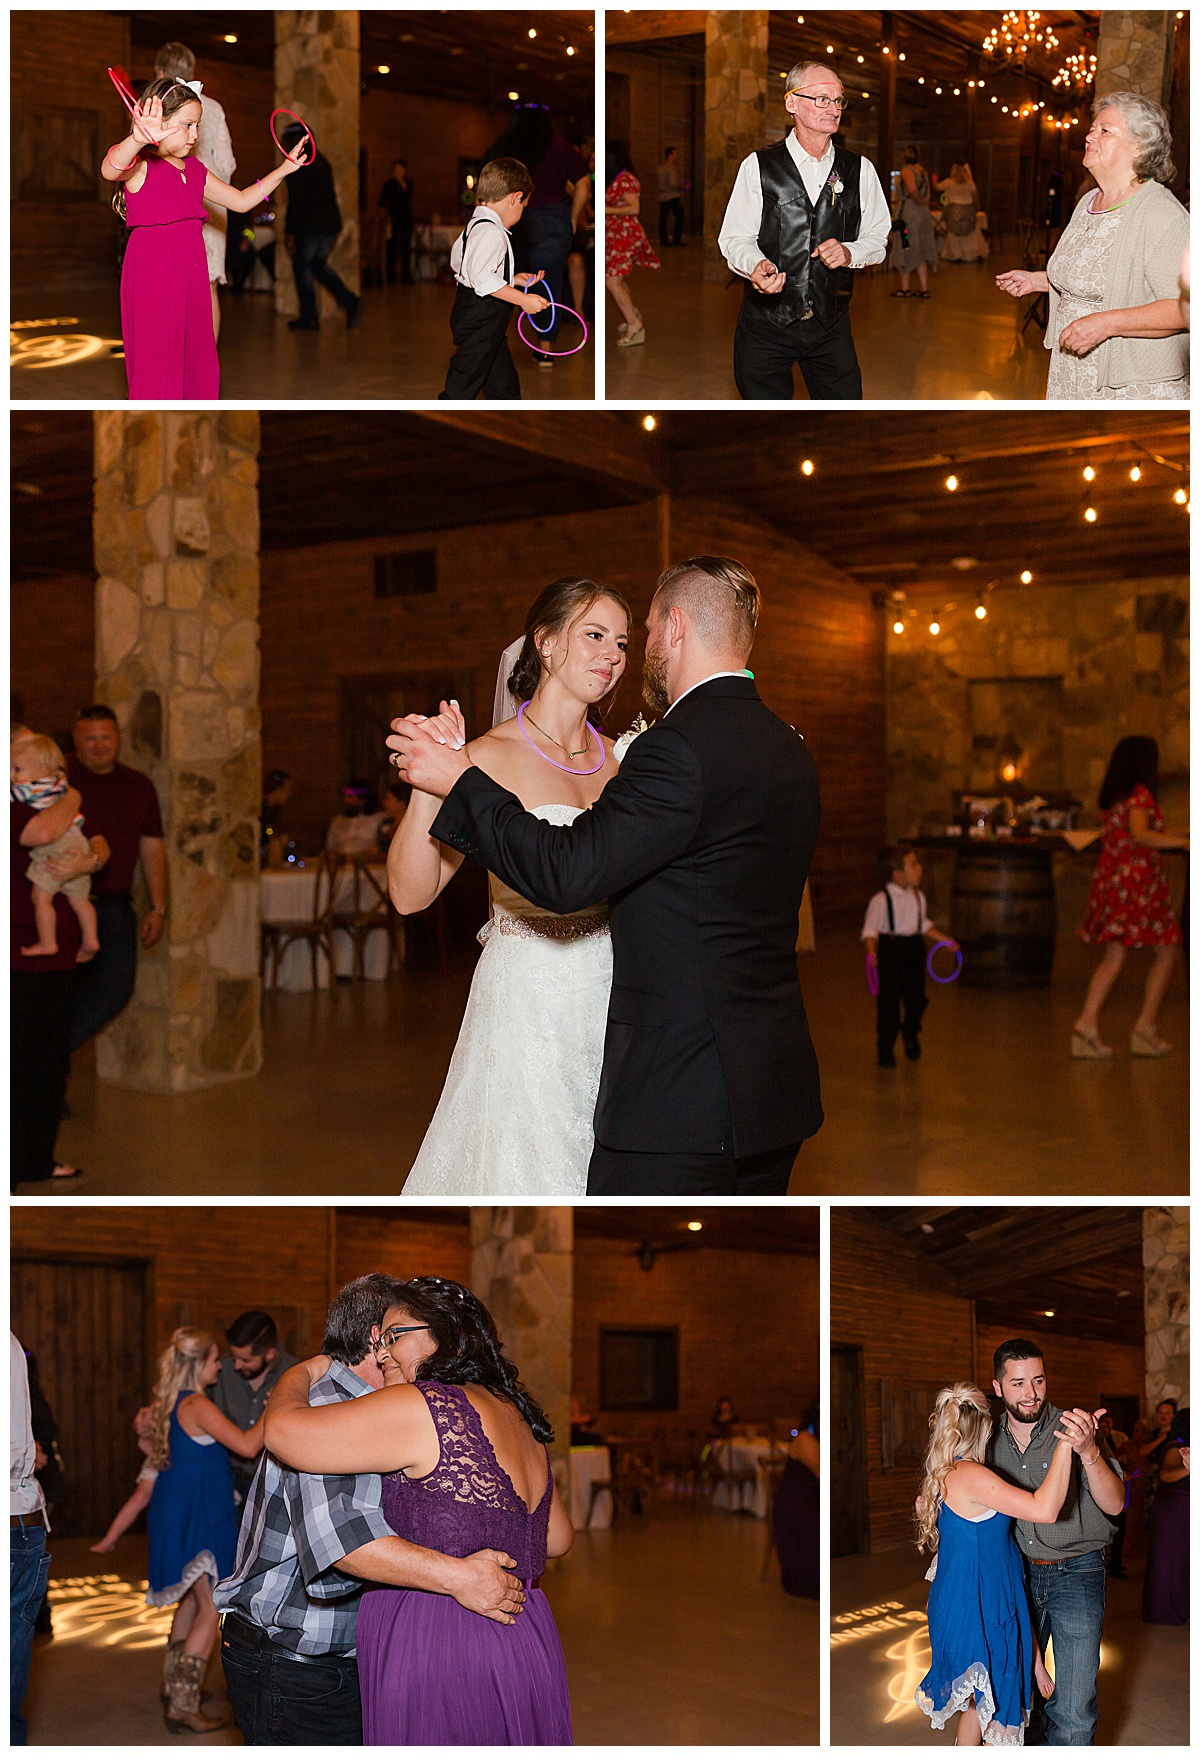 Texas-Magnolia-Bells-Rustic-Wedding-Carly-Barton-Photography_0041.jpg